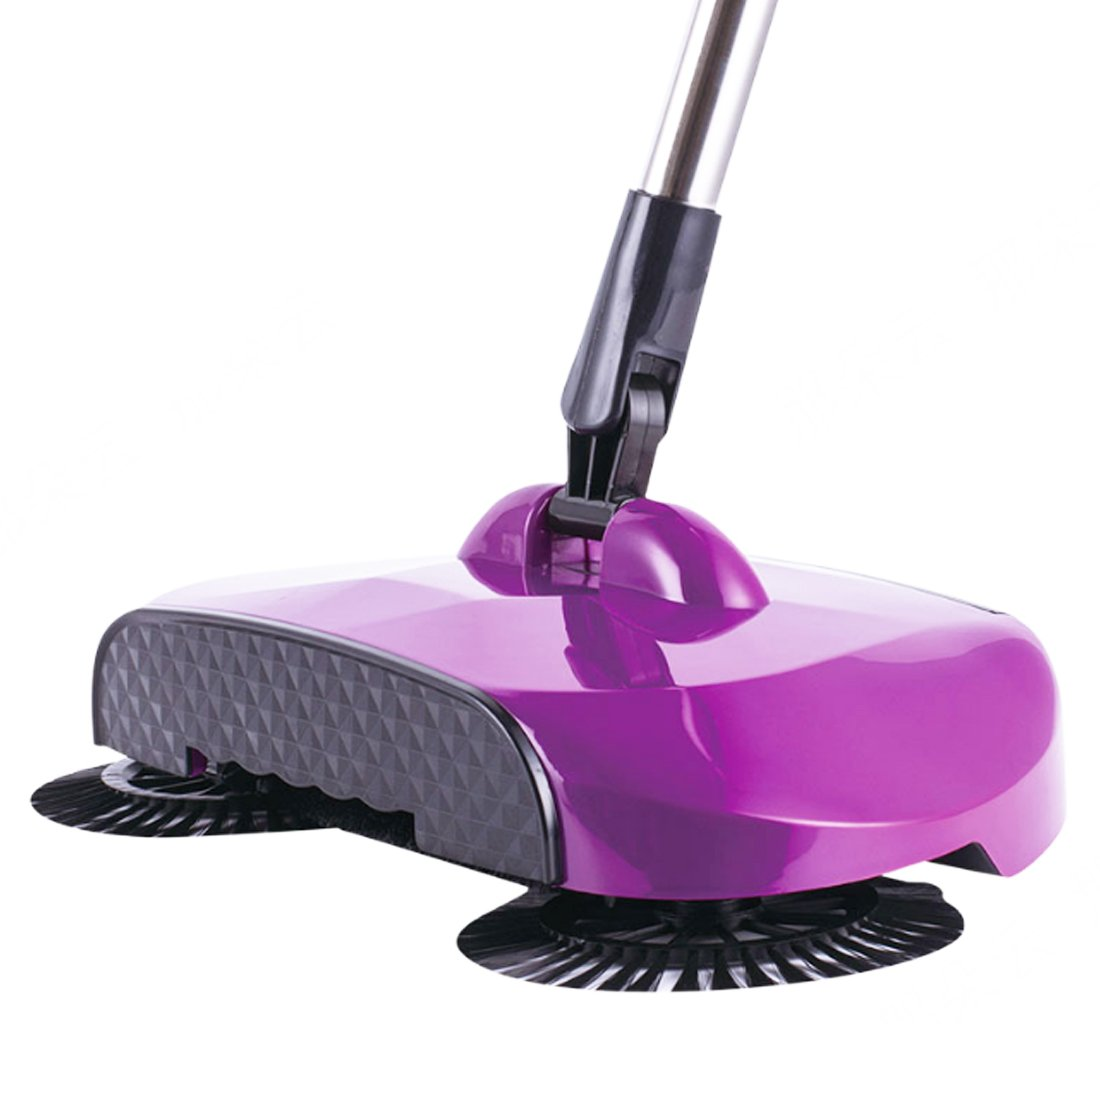 WQWL New Upgraded Aotomatic 360 Degrees Rotation 3-In-1 Non-Electricity Lazy Household Hand Push Adjustable Rod Sweeper Broom Floor Cleaner Dustpan Trash Bin Set (purple)